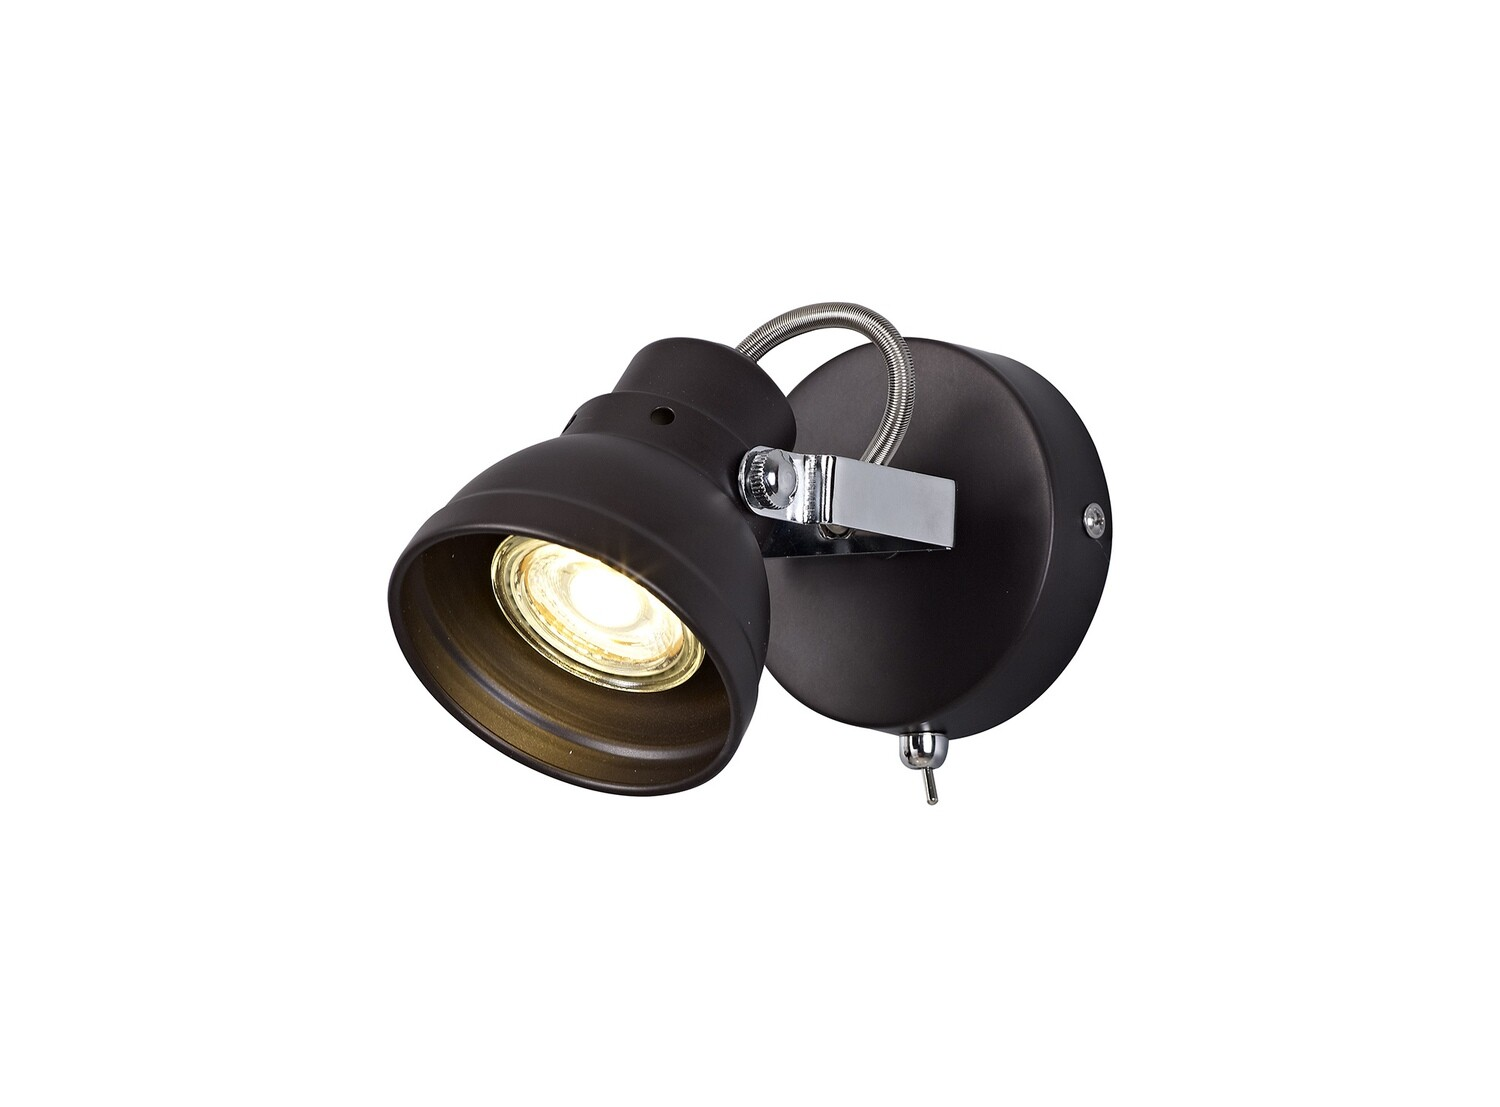 Mirko Adjustable Spotlight, 1 x GU10 (Max 10W LED), Oiled Bronze/Polished Chrome